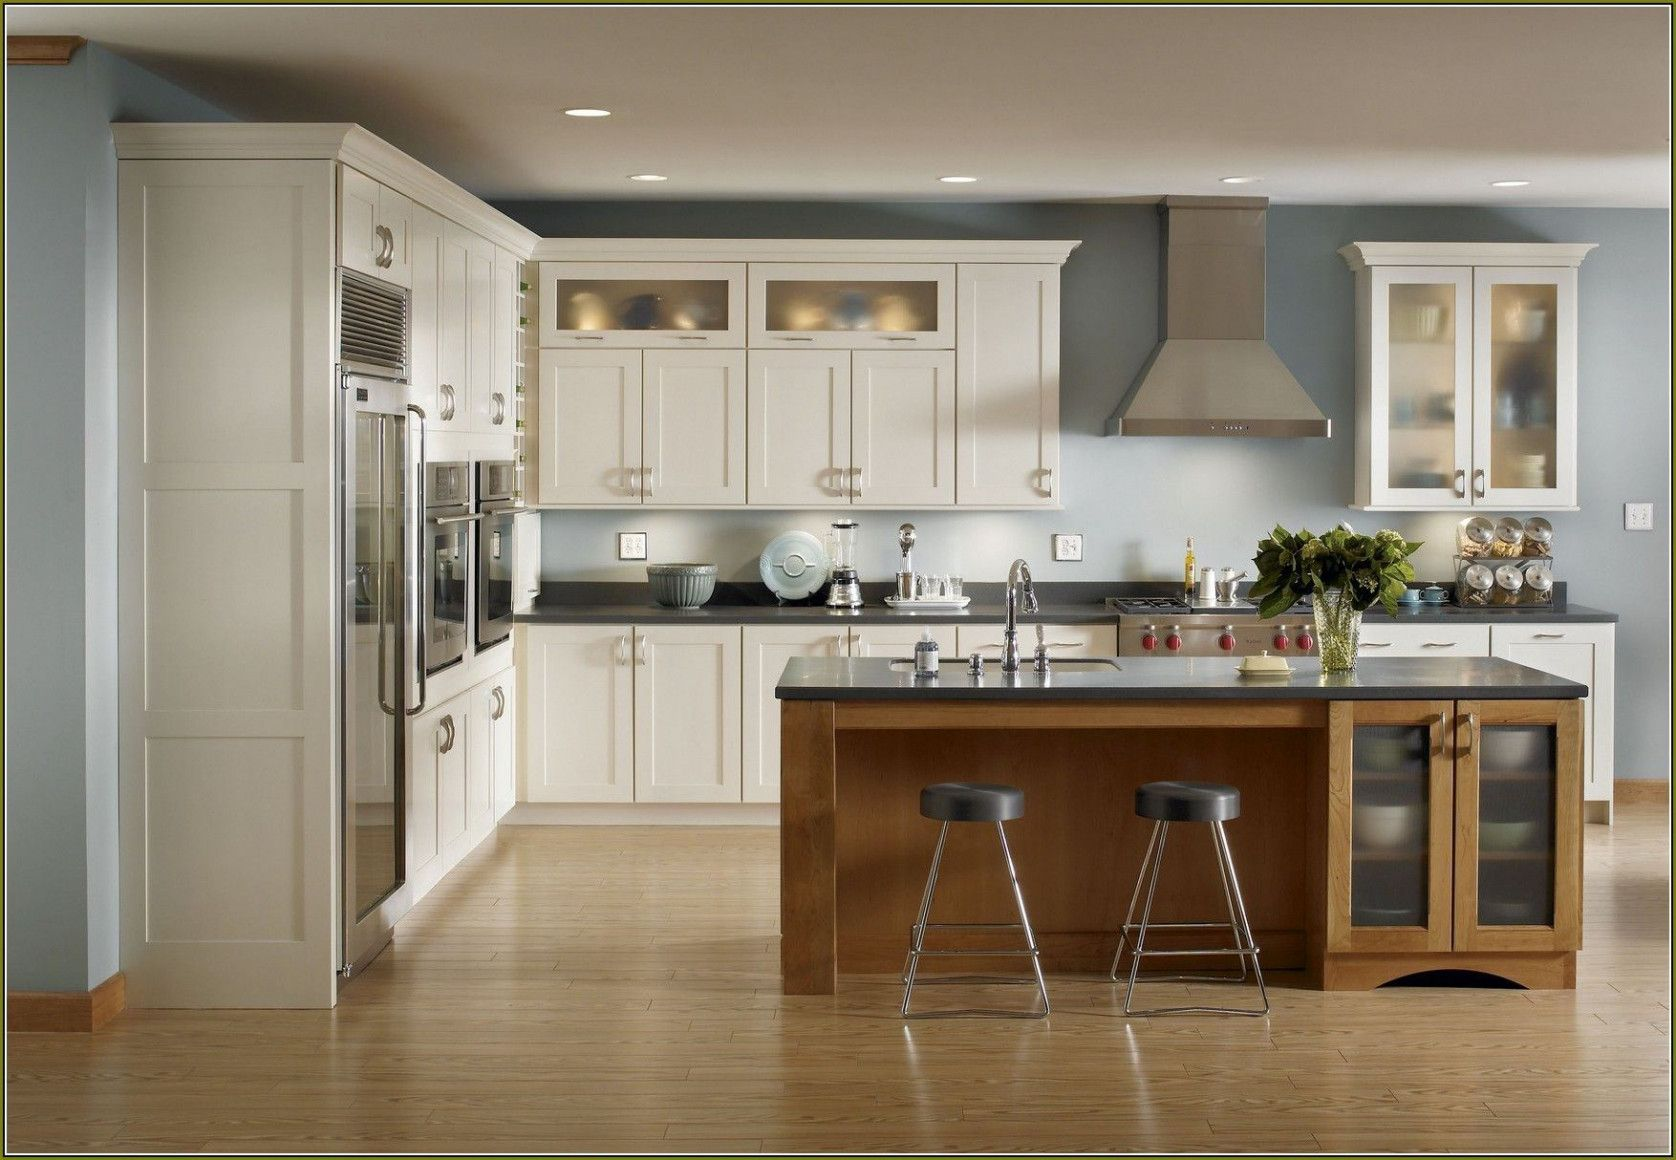 77 cabinet doors home depot kitchen cabinets storage ideas check more at http